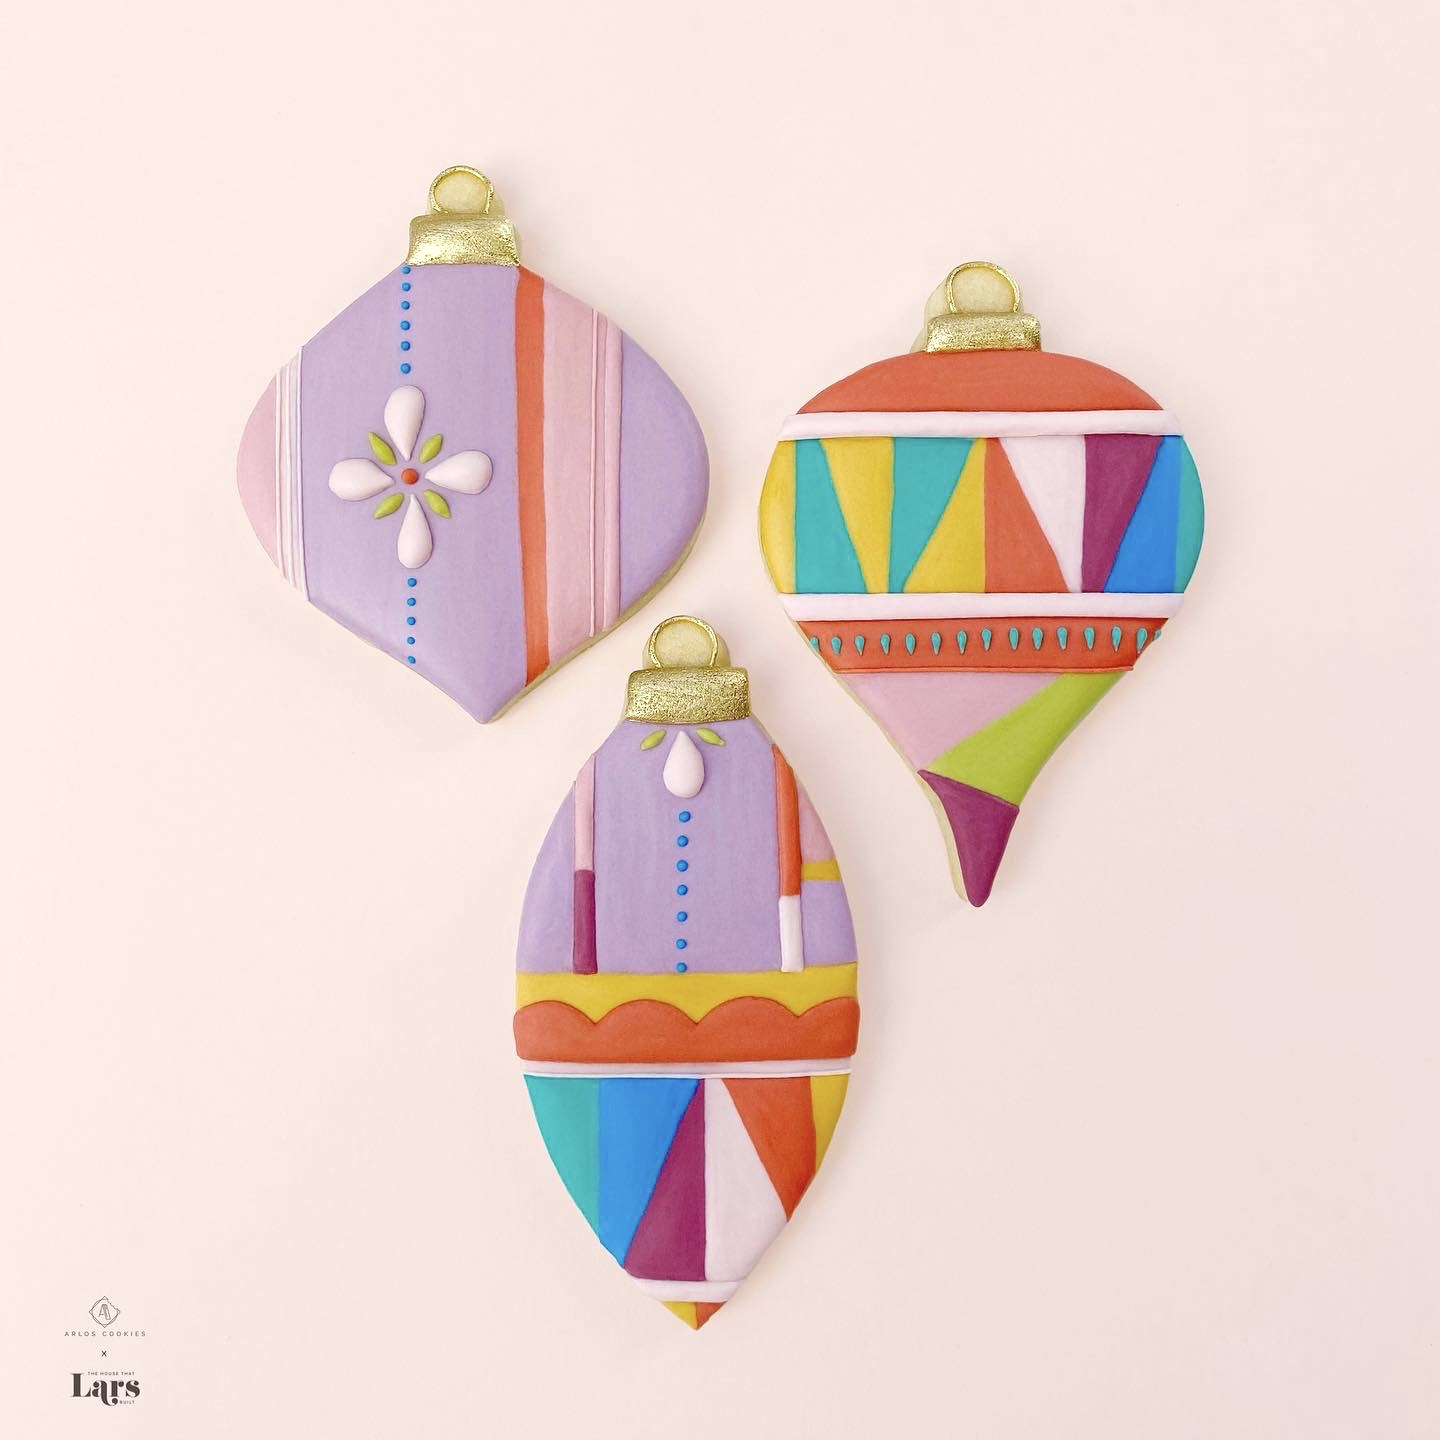 A collaboration between Arlos and Lars! Colorful geometric and floral patterns on ornament-shaped cookies.